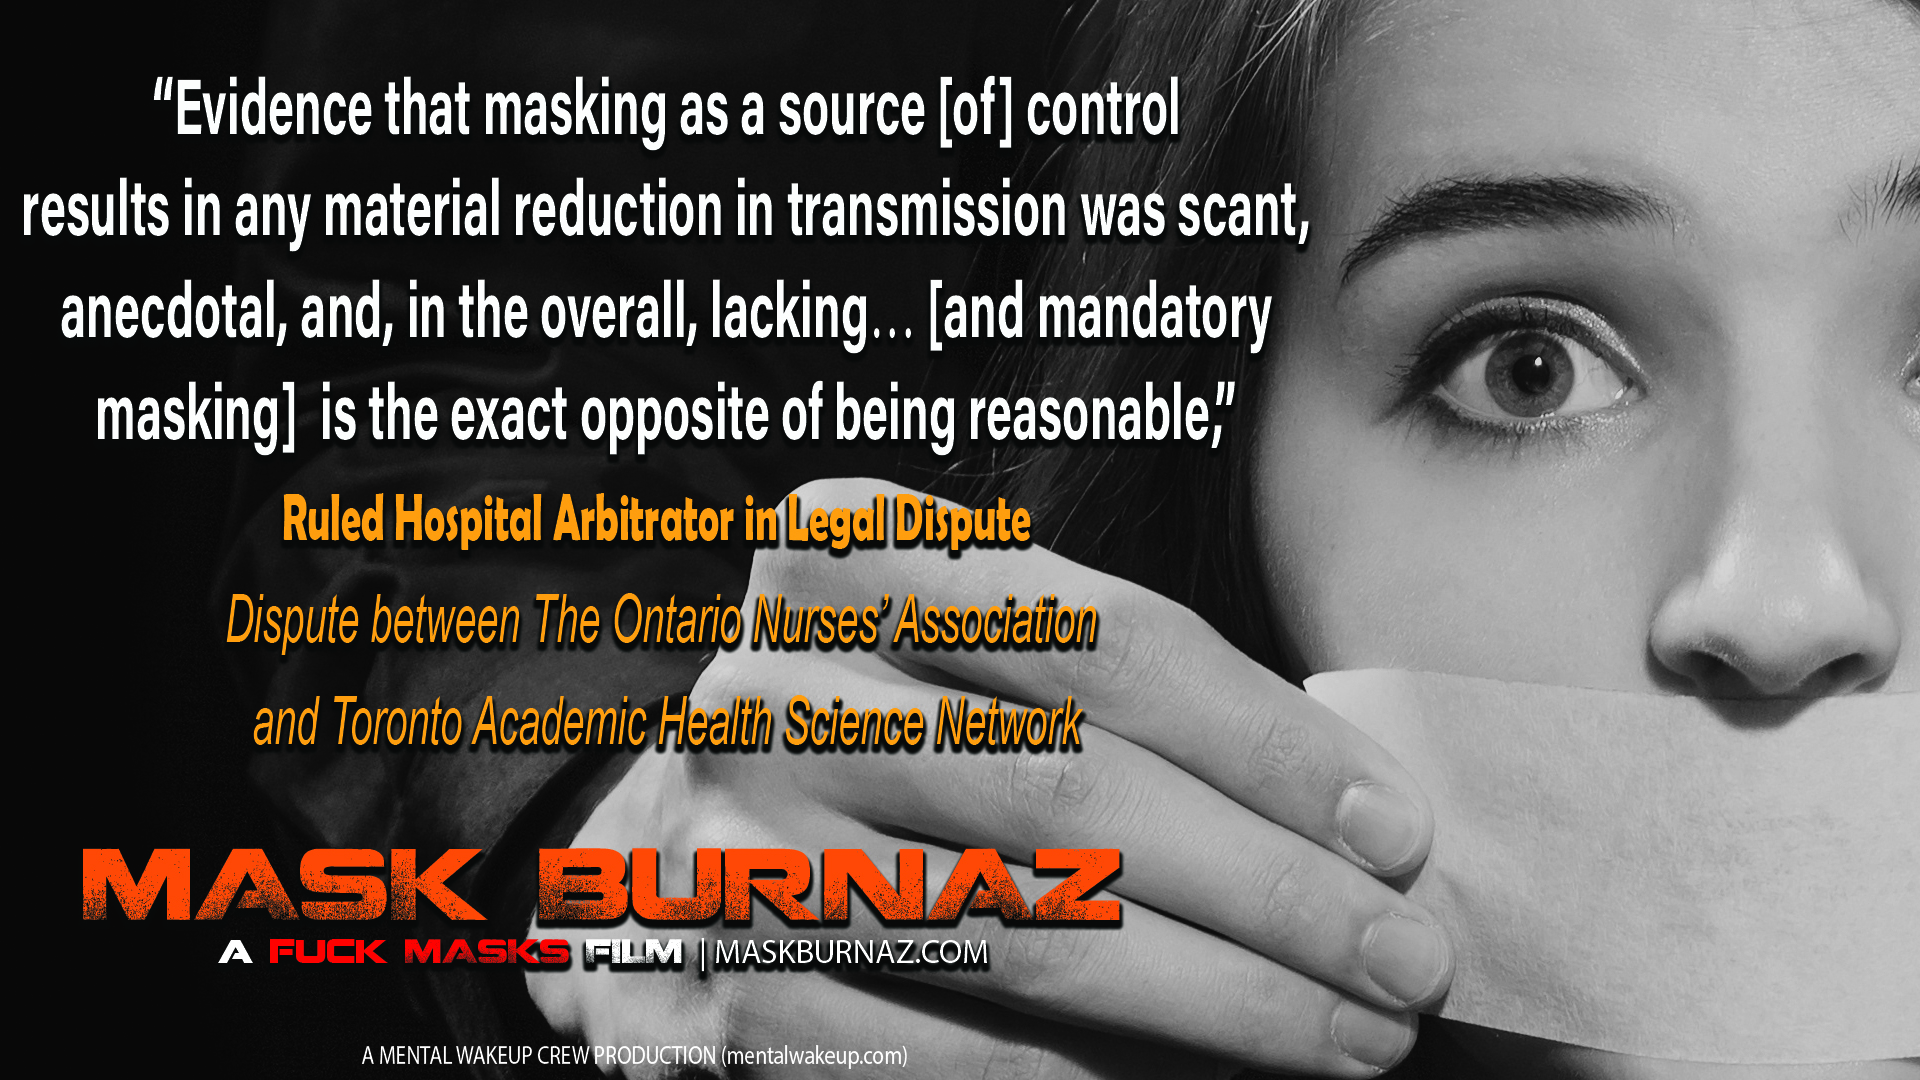 new-20min-mask-burnaz-/-mwc-truth-mix-show-streaming-at-7:30pm-pst